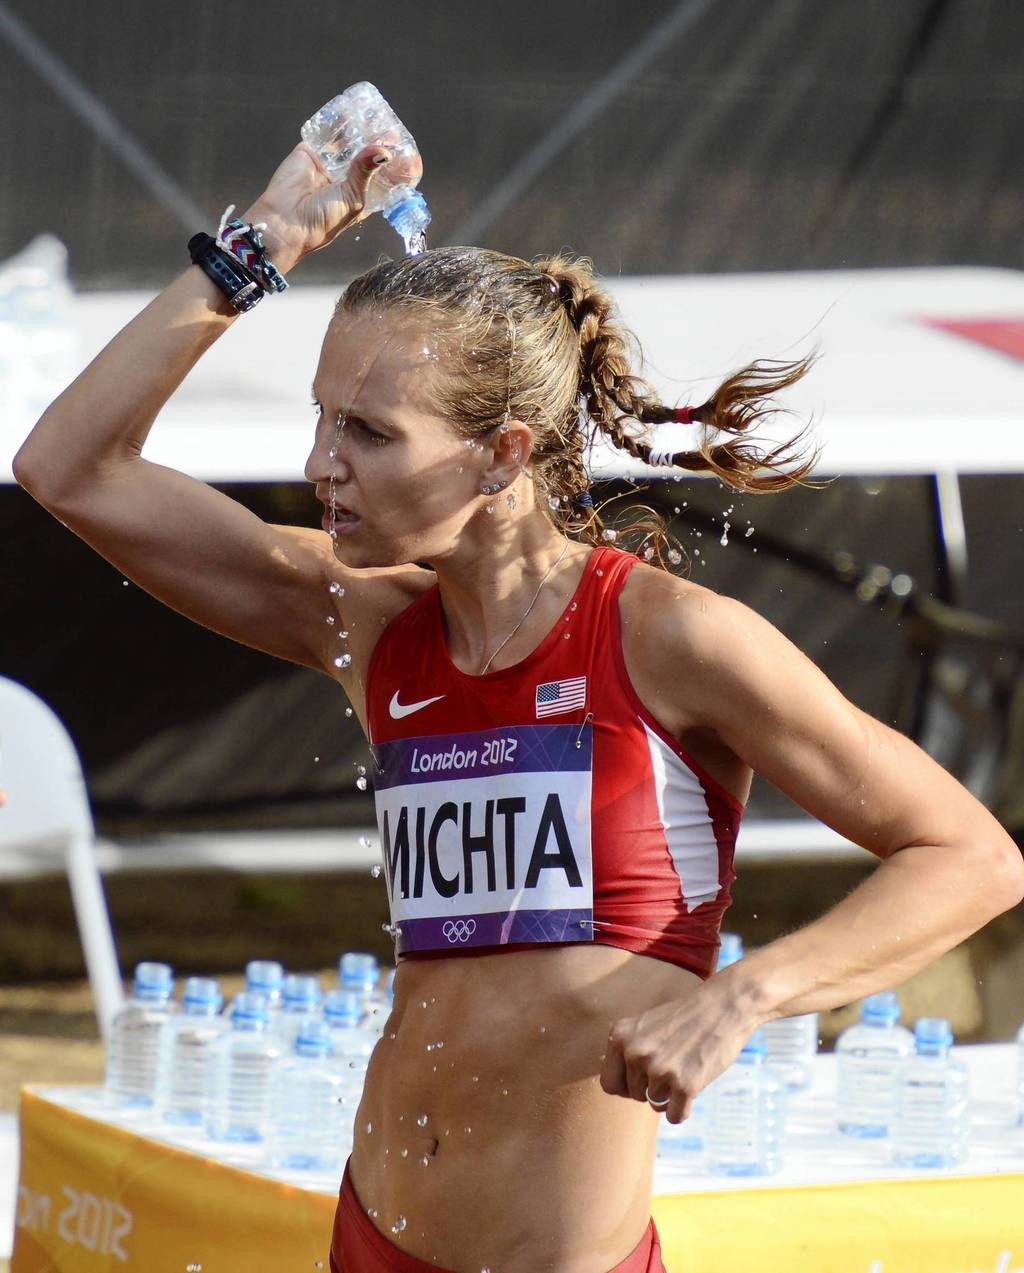 Maria Michta (USA) pours water on her head during the women's 20km race walk during the London 2012 Olympic Games at The Mall.